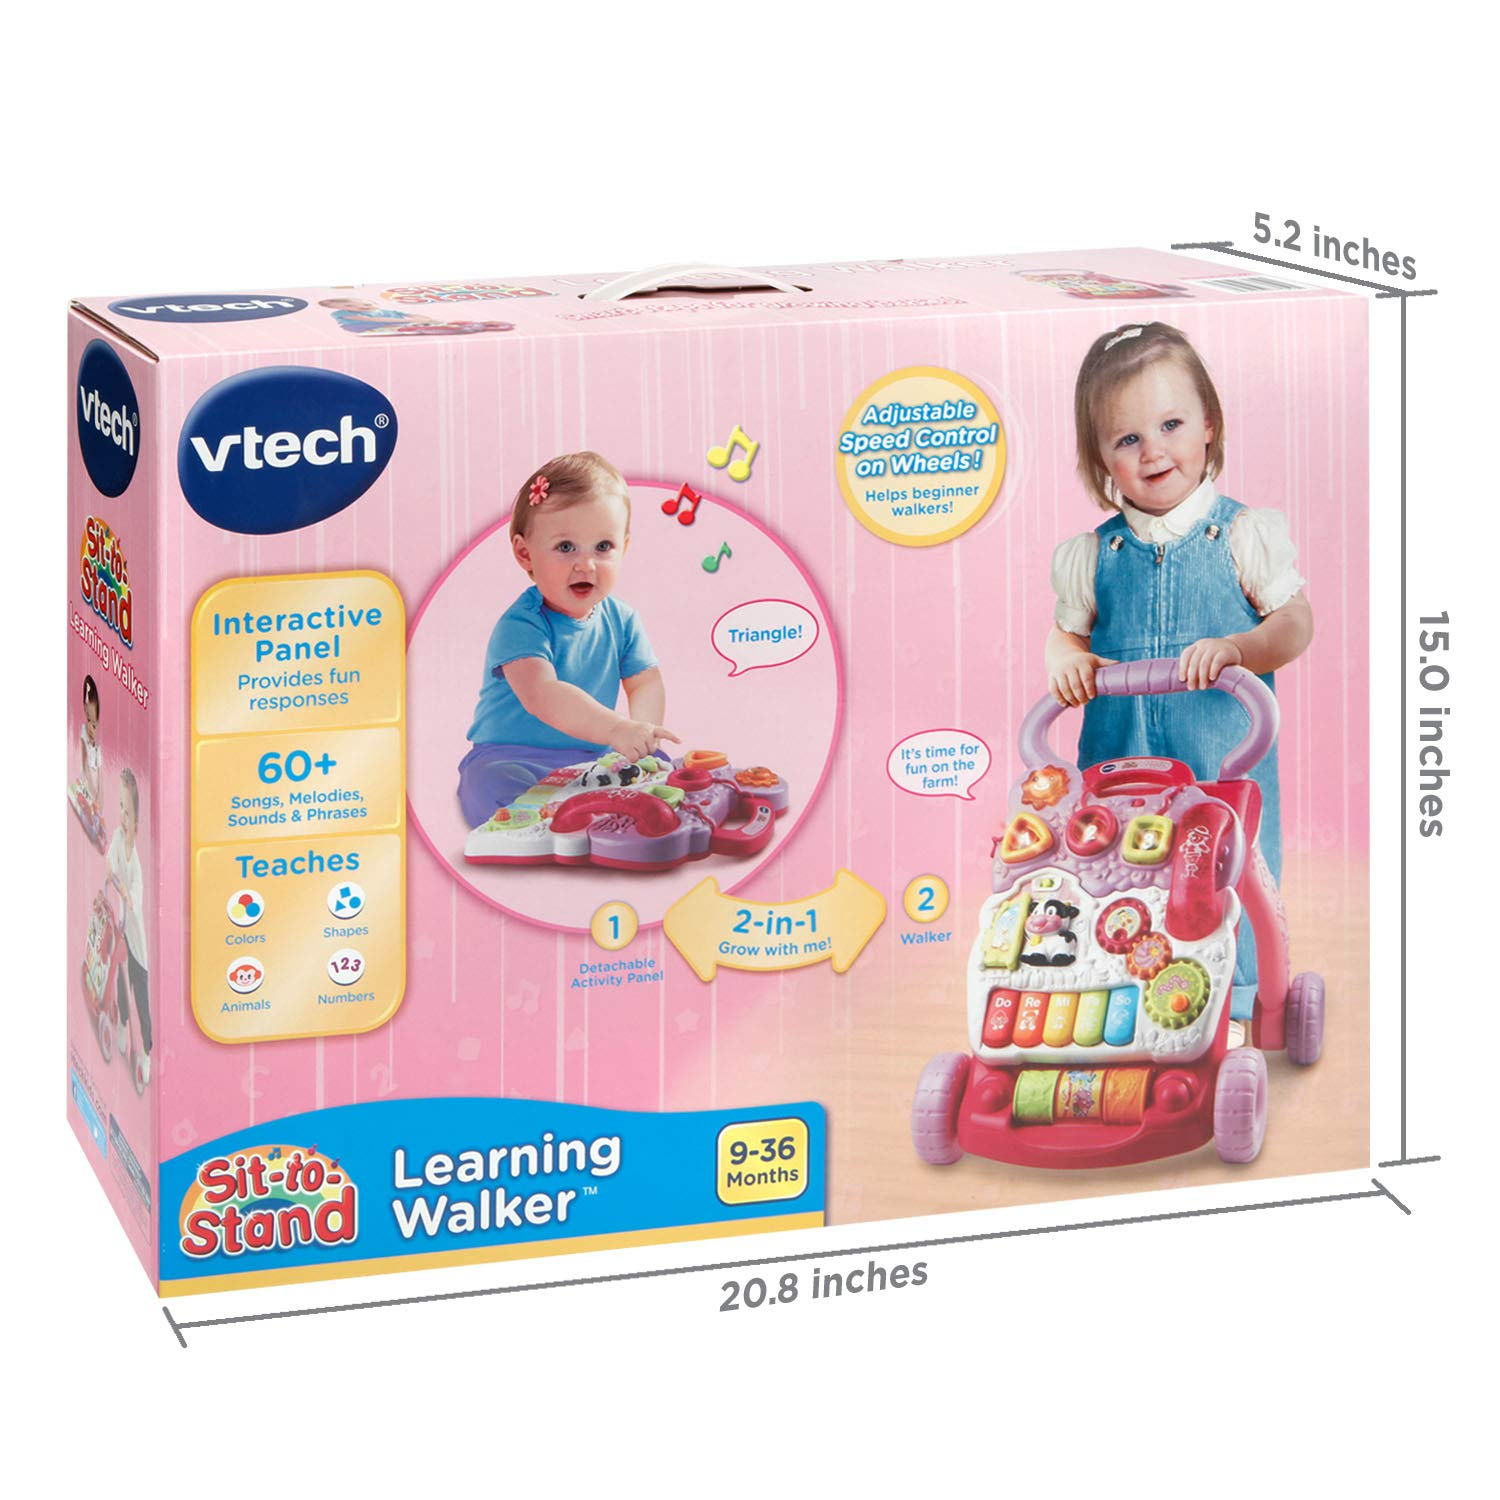 vtech Sit-to-Stand Learning Walker - Pink by vTech TOY (English ...